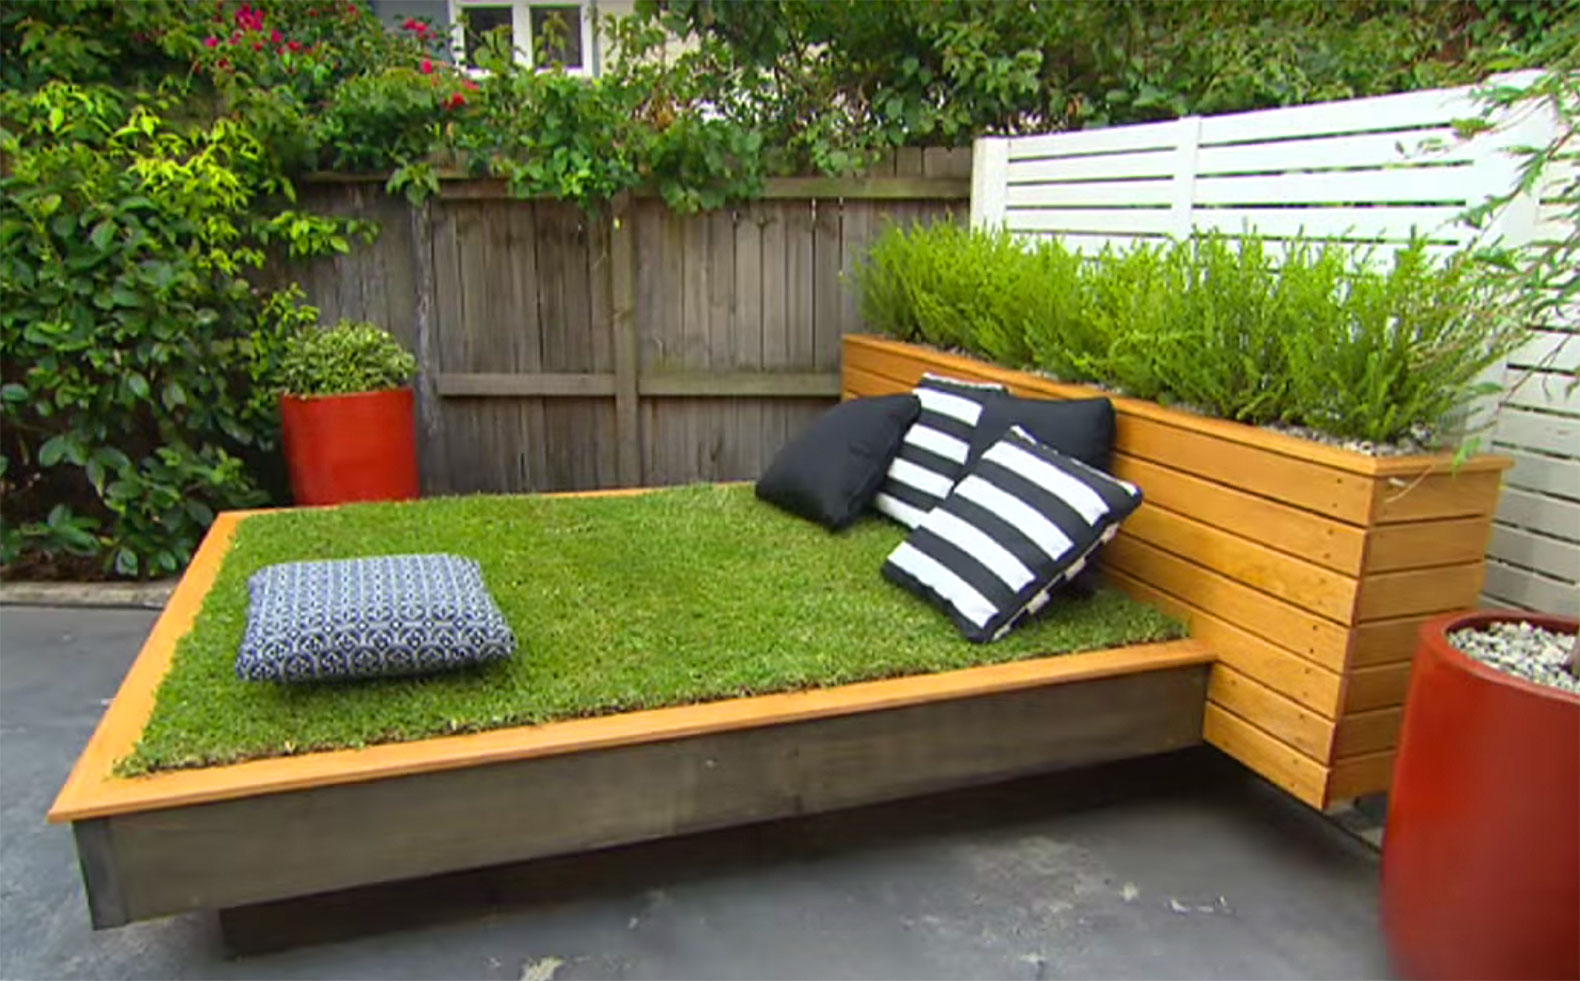 How to make an amazing grass daybed out of wood pallets for How to make a pallet daybed